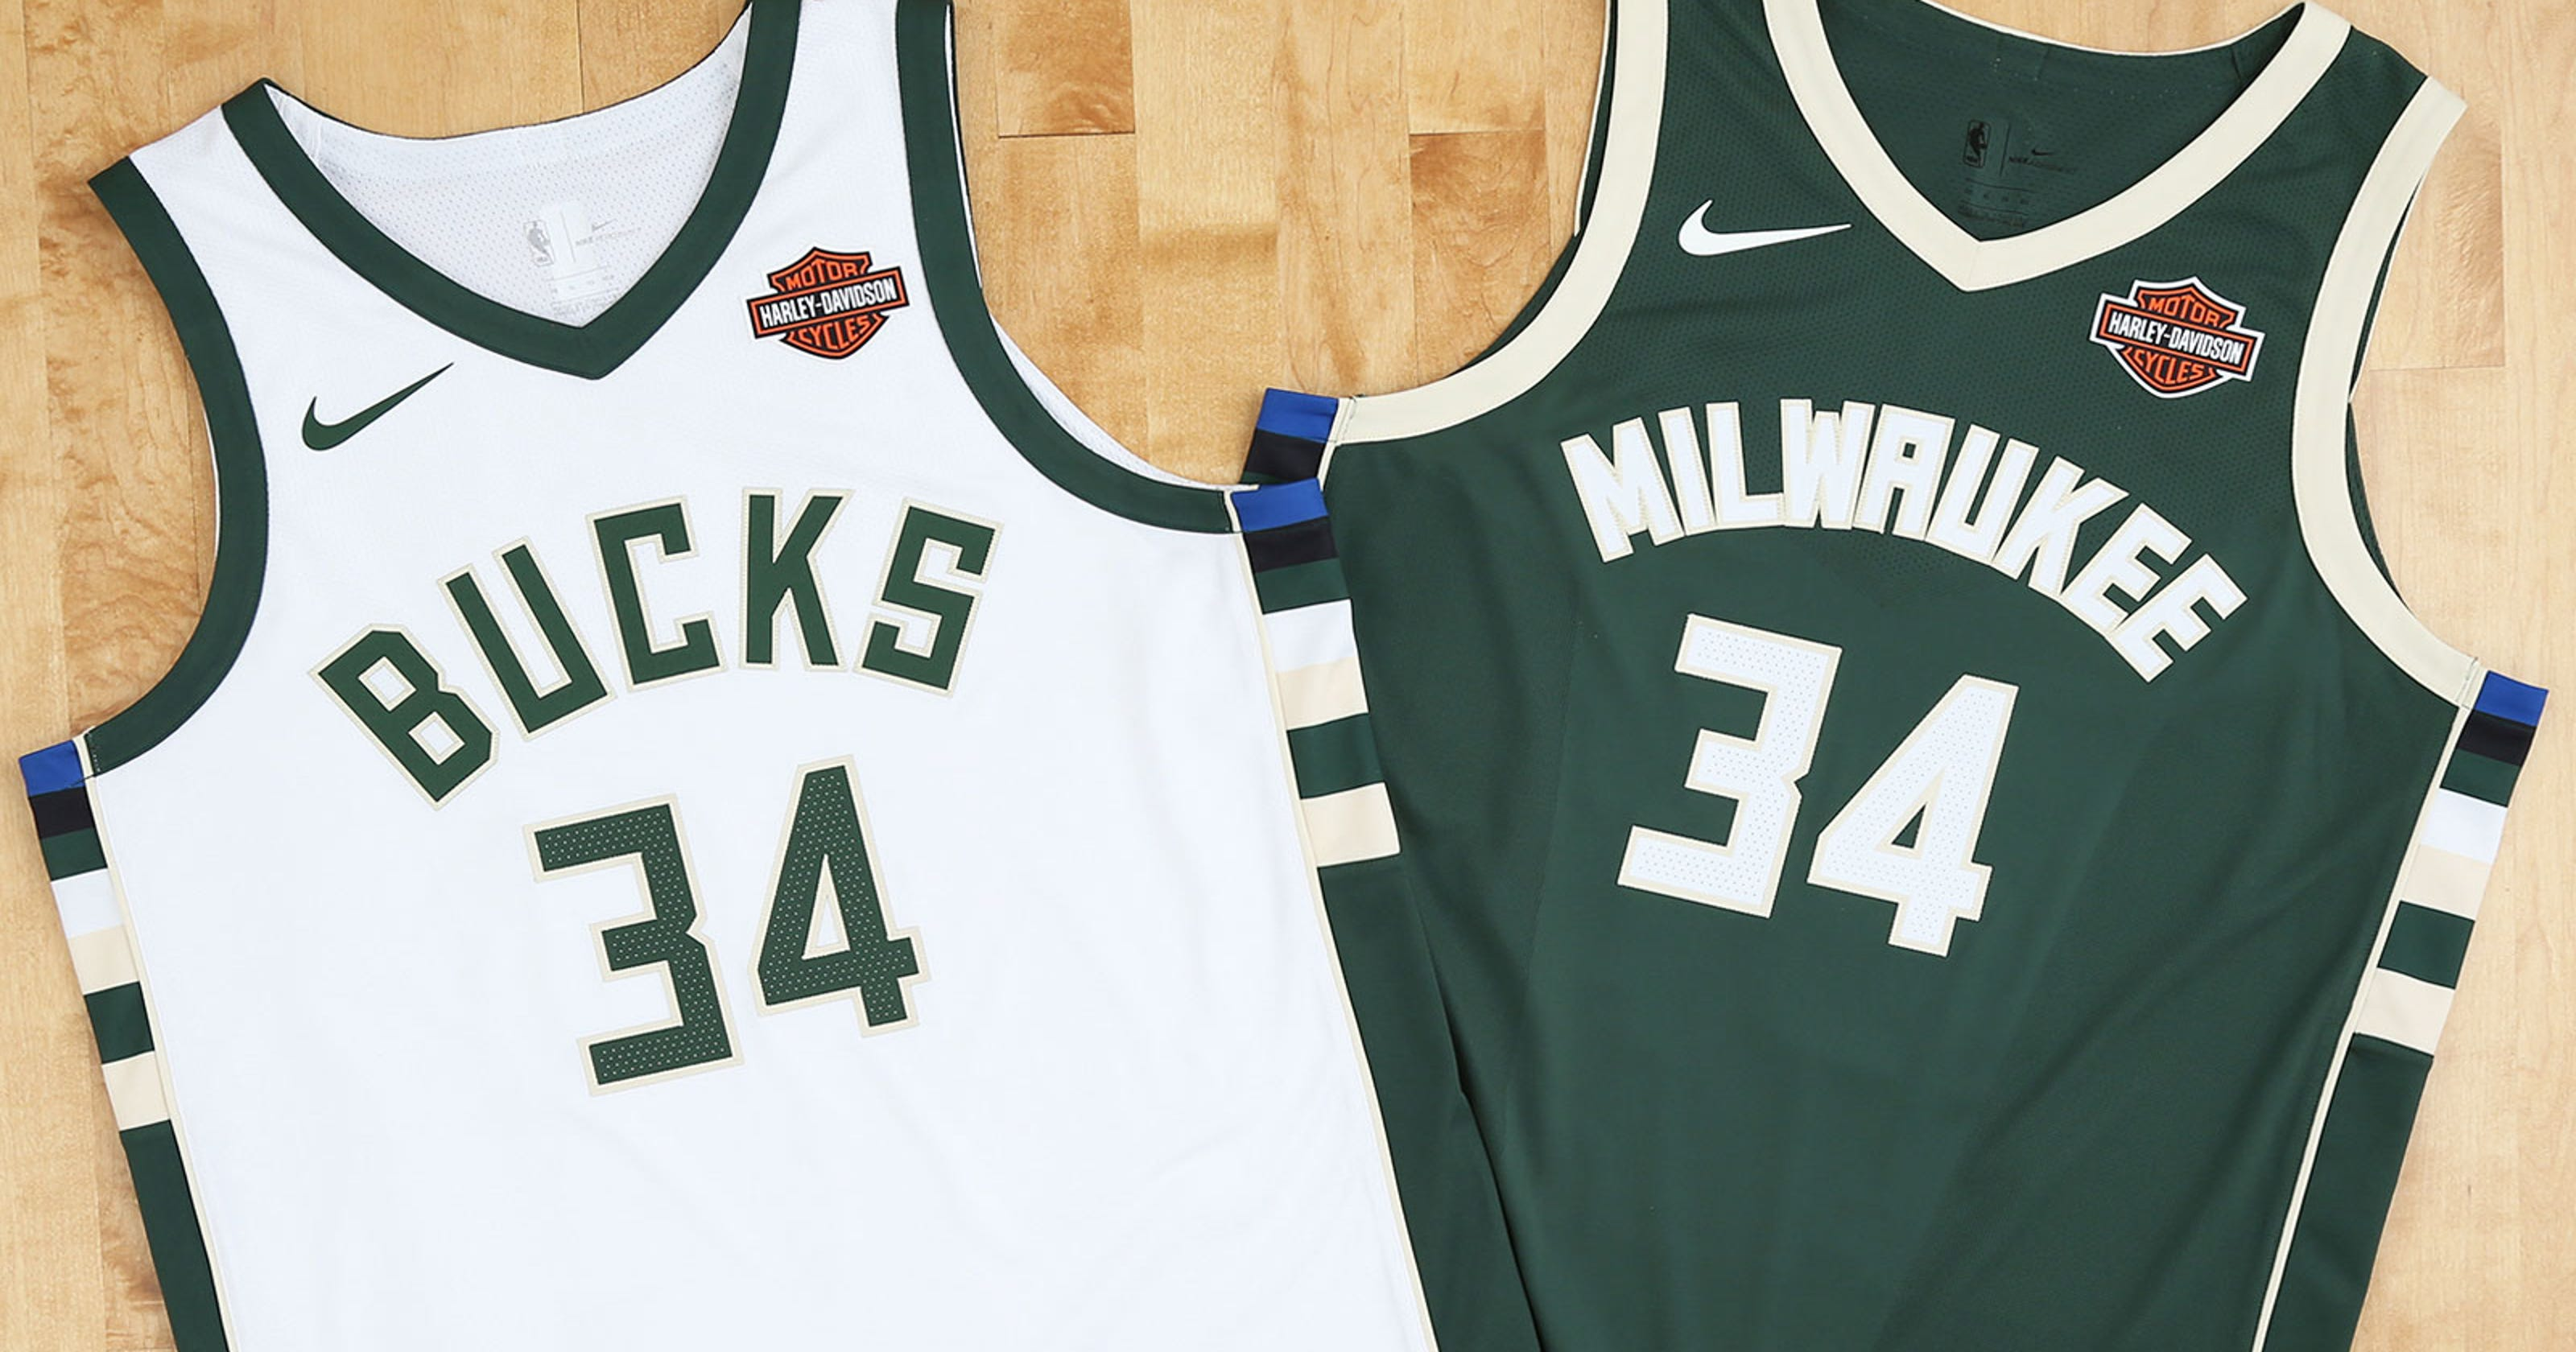 1292eeee6 Milwaukee Bucks game jerseys to feature Harley-Davidson advertising patch  starting in 2017- 18